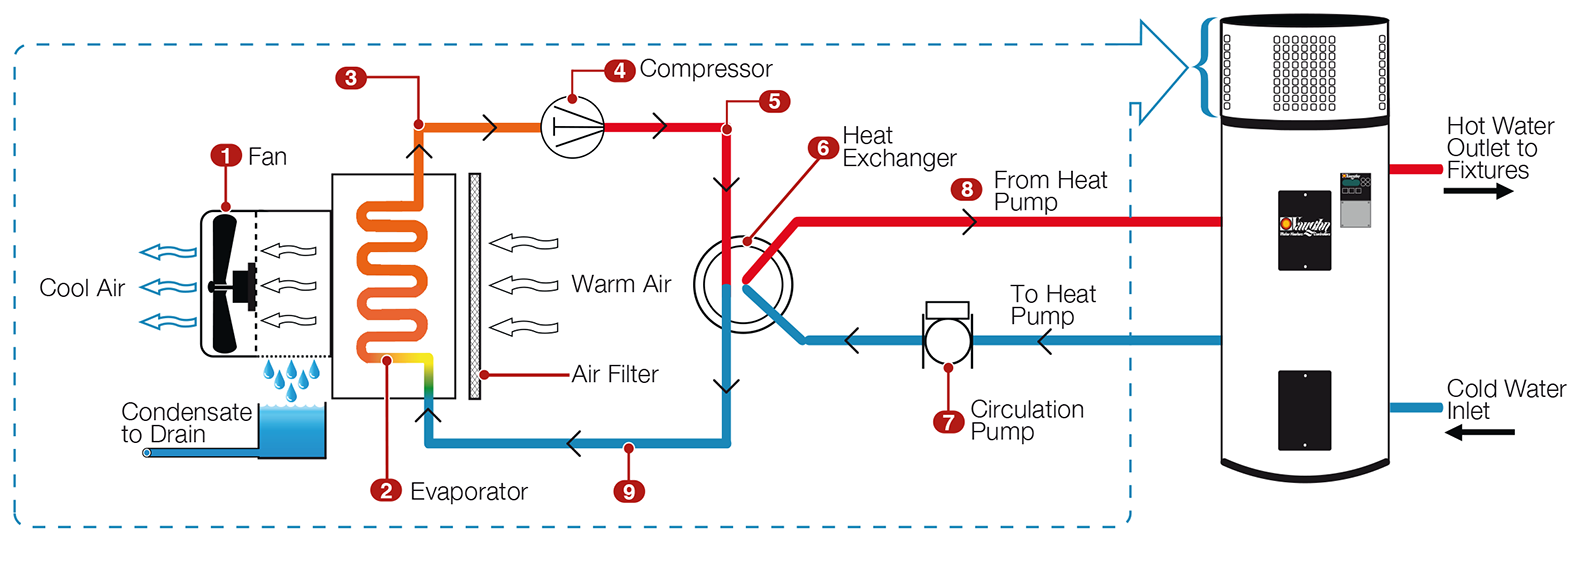 typical water heater flow diagram auto electrical wiring diagram u2022 rh focusnews co